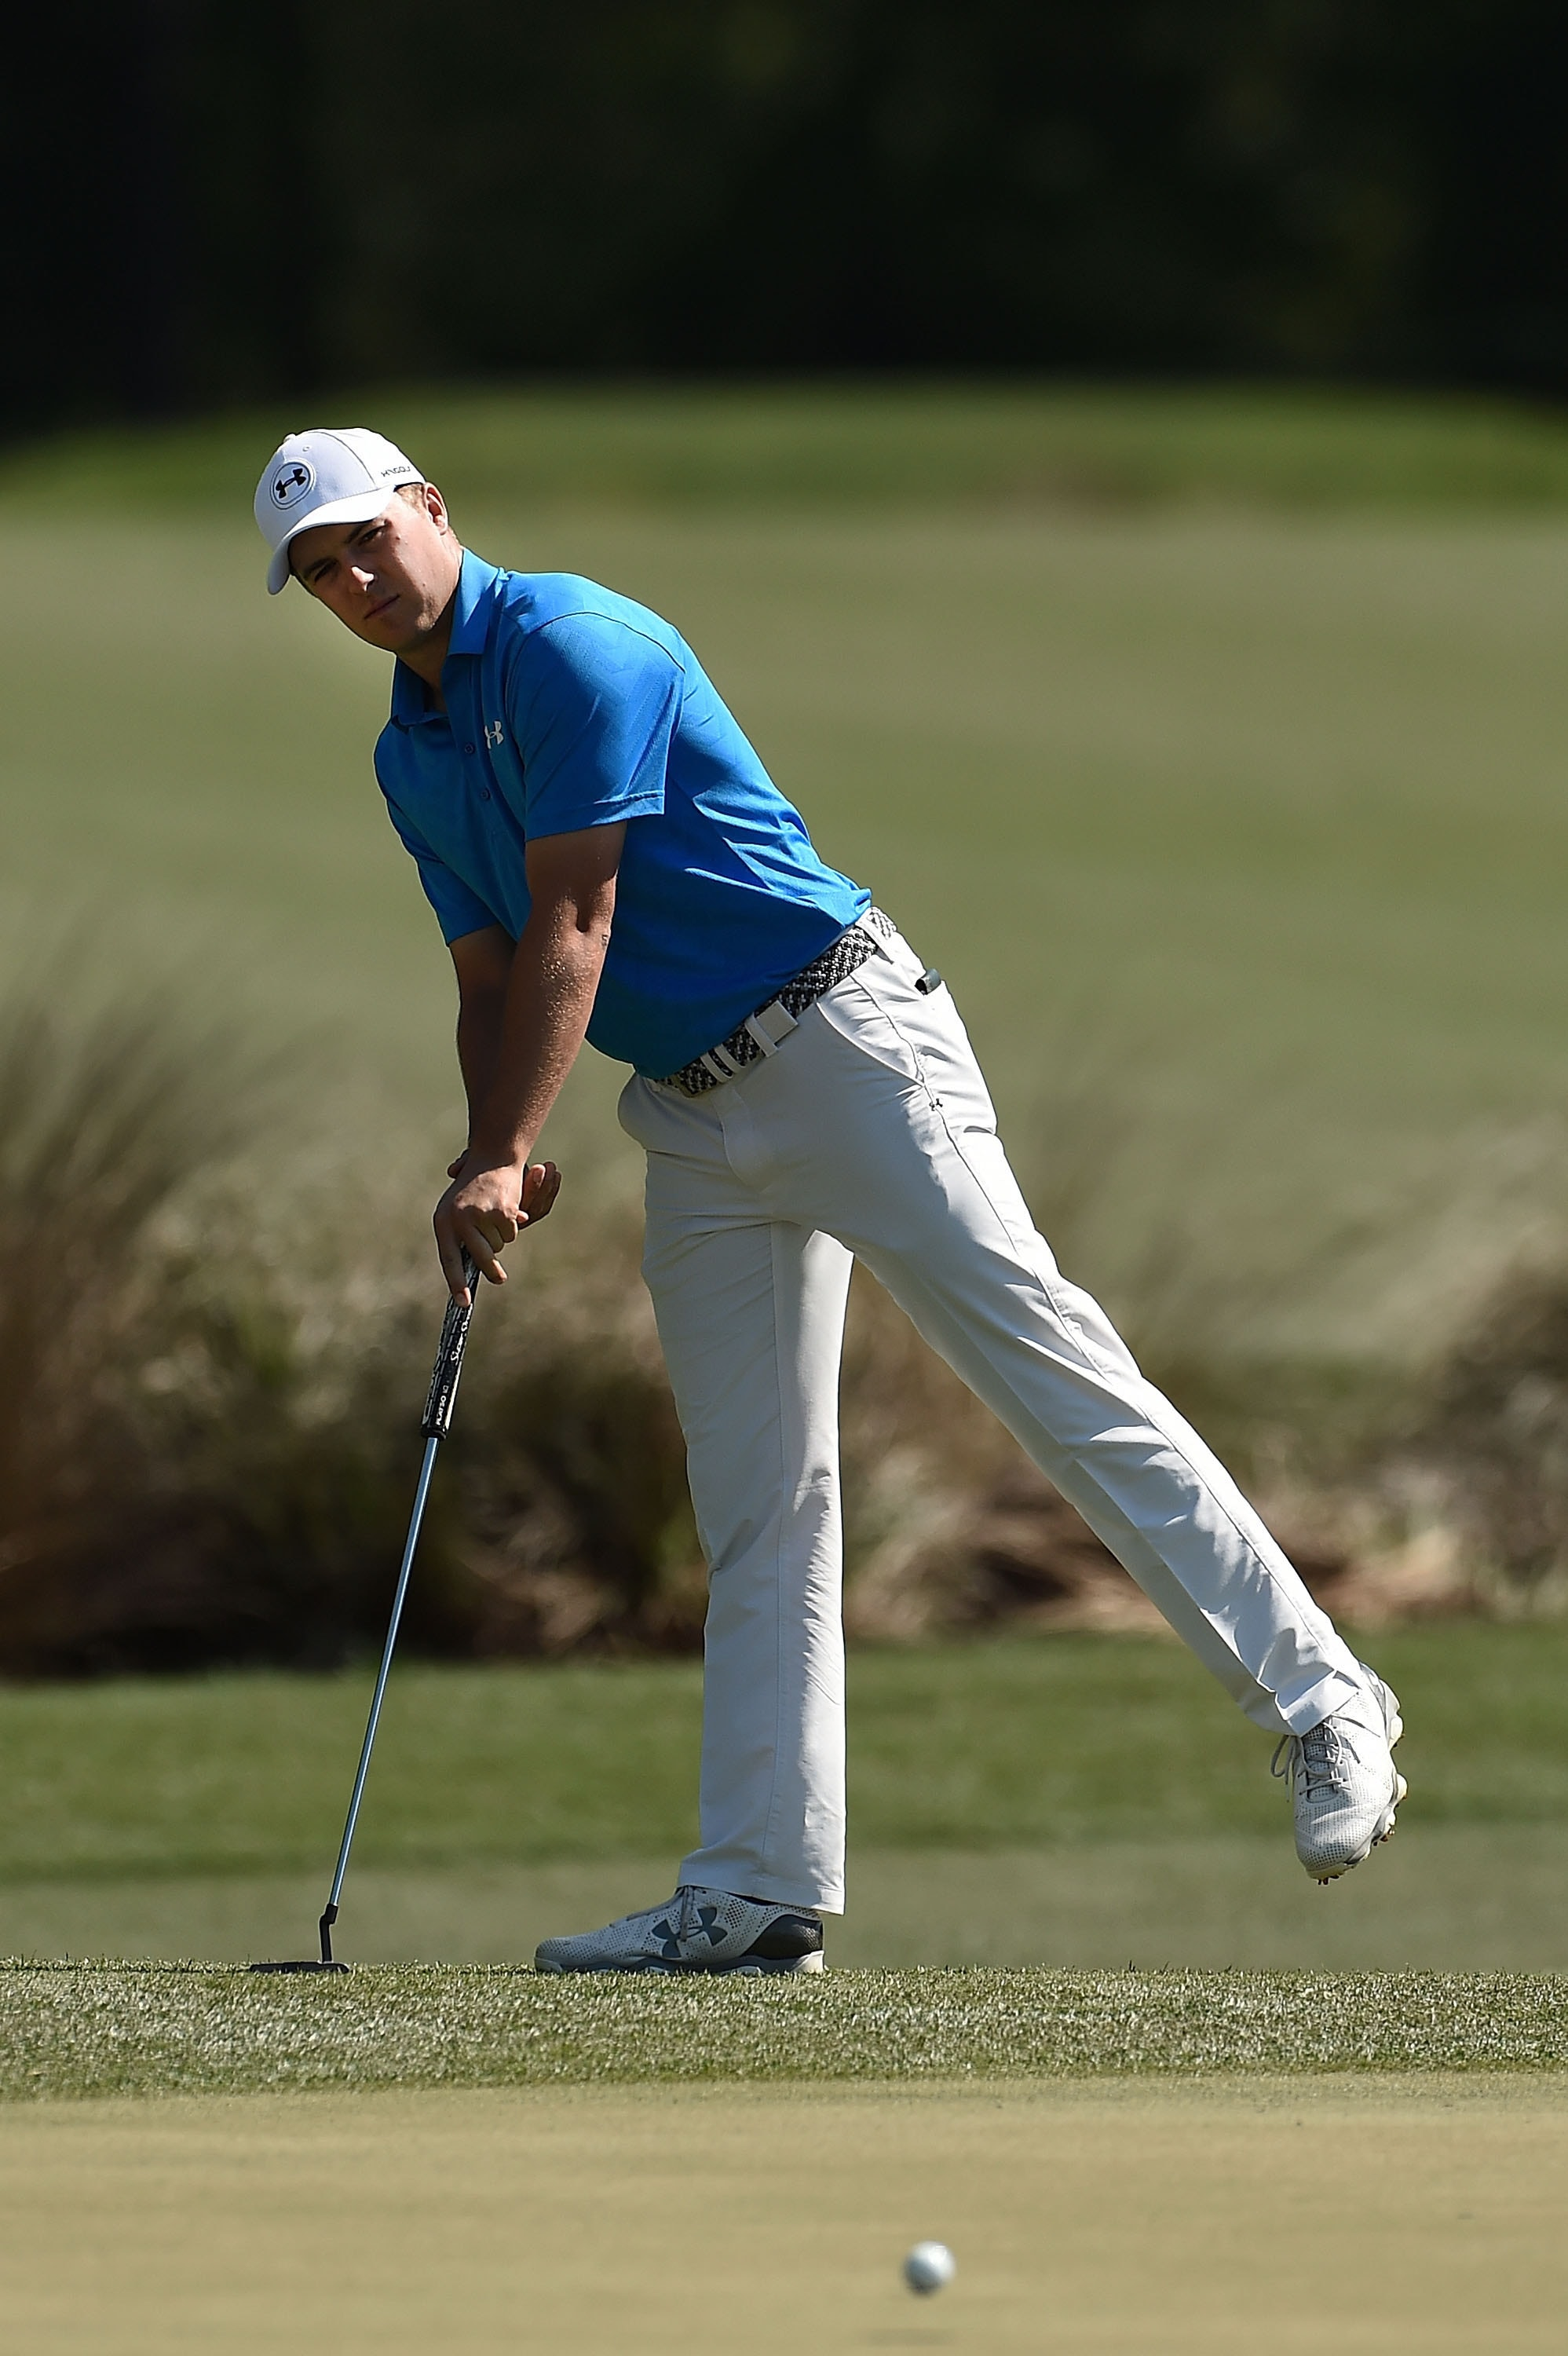 Desperate to improve his putting, Jordan Spieth tries out a new stance